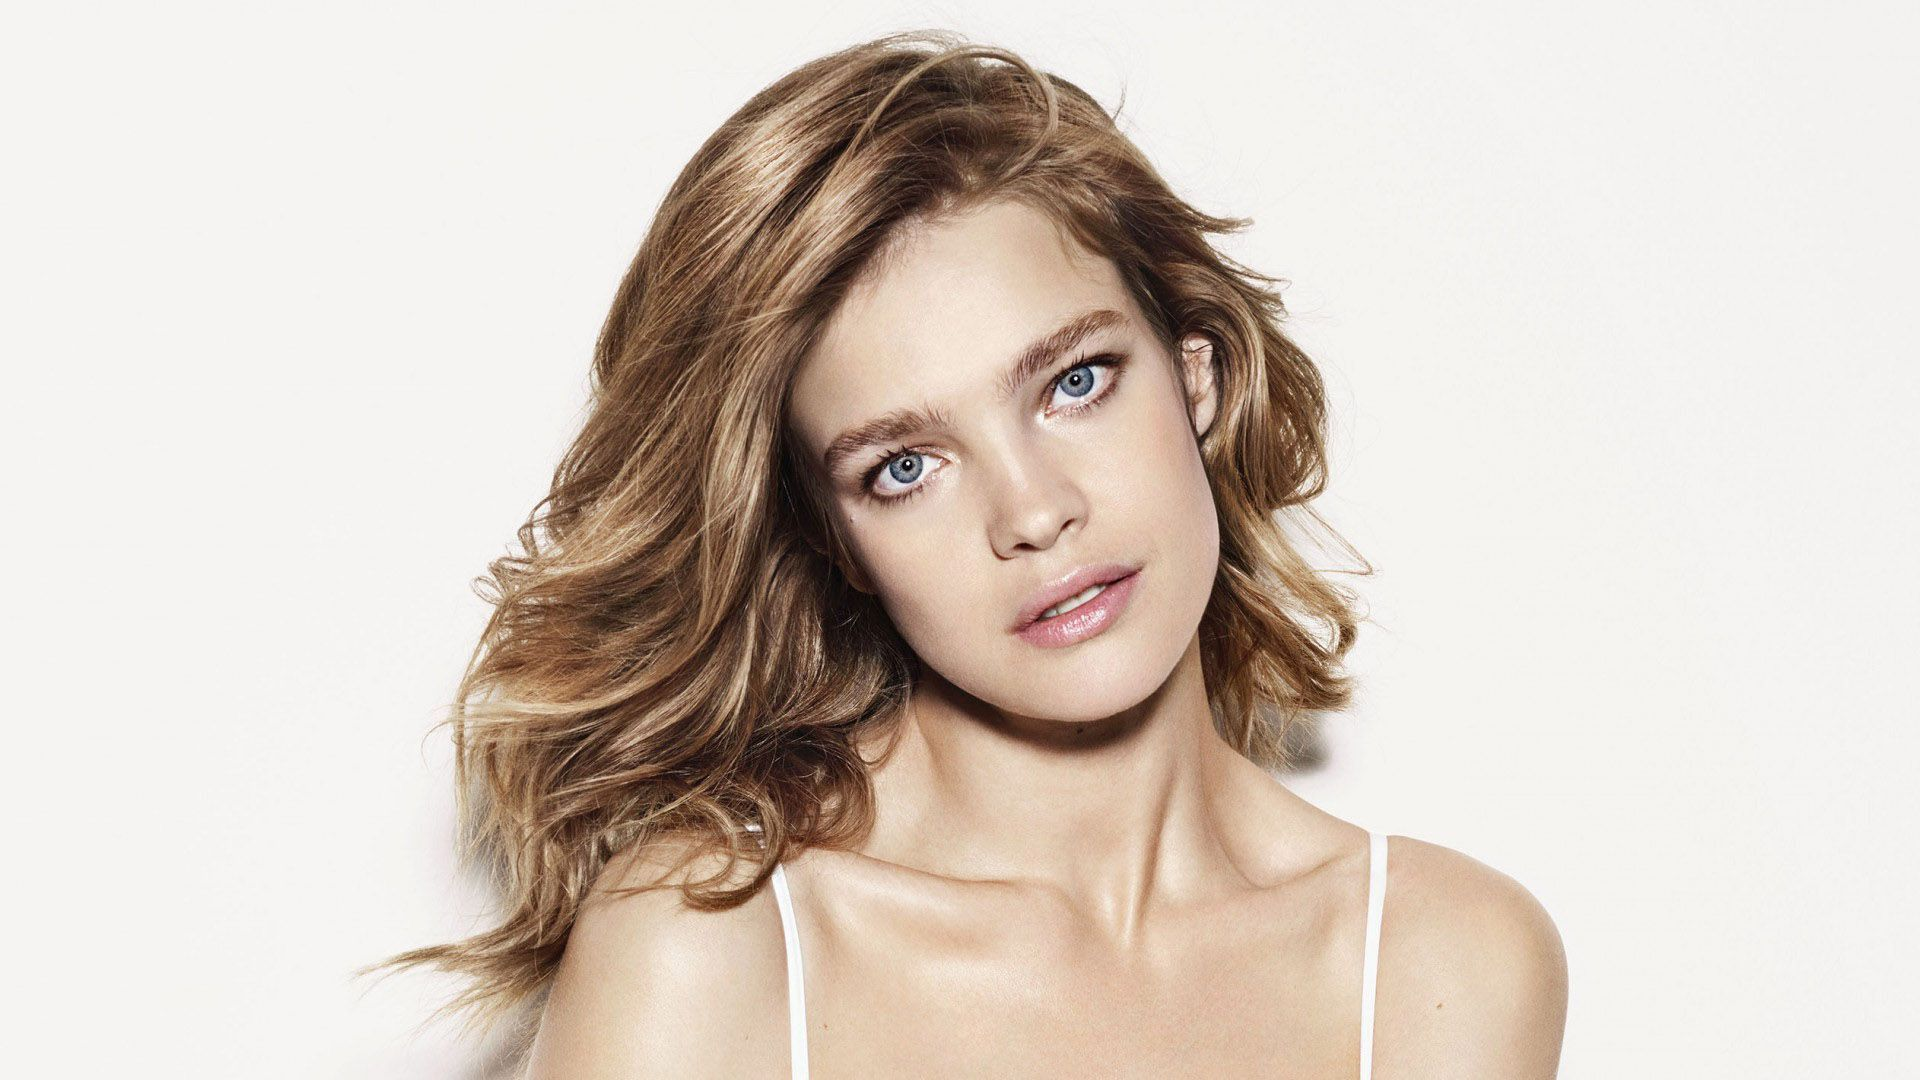 beautiful natalia vodianova wallpaper 61147